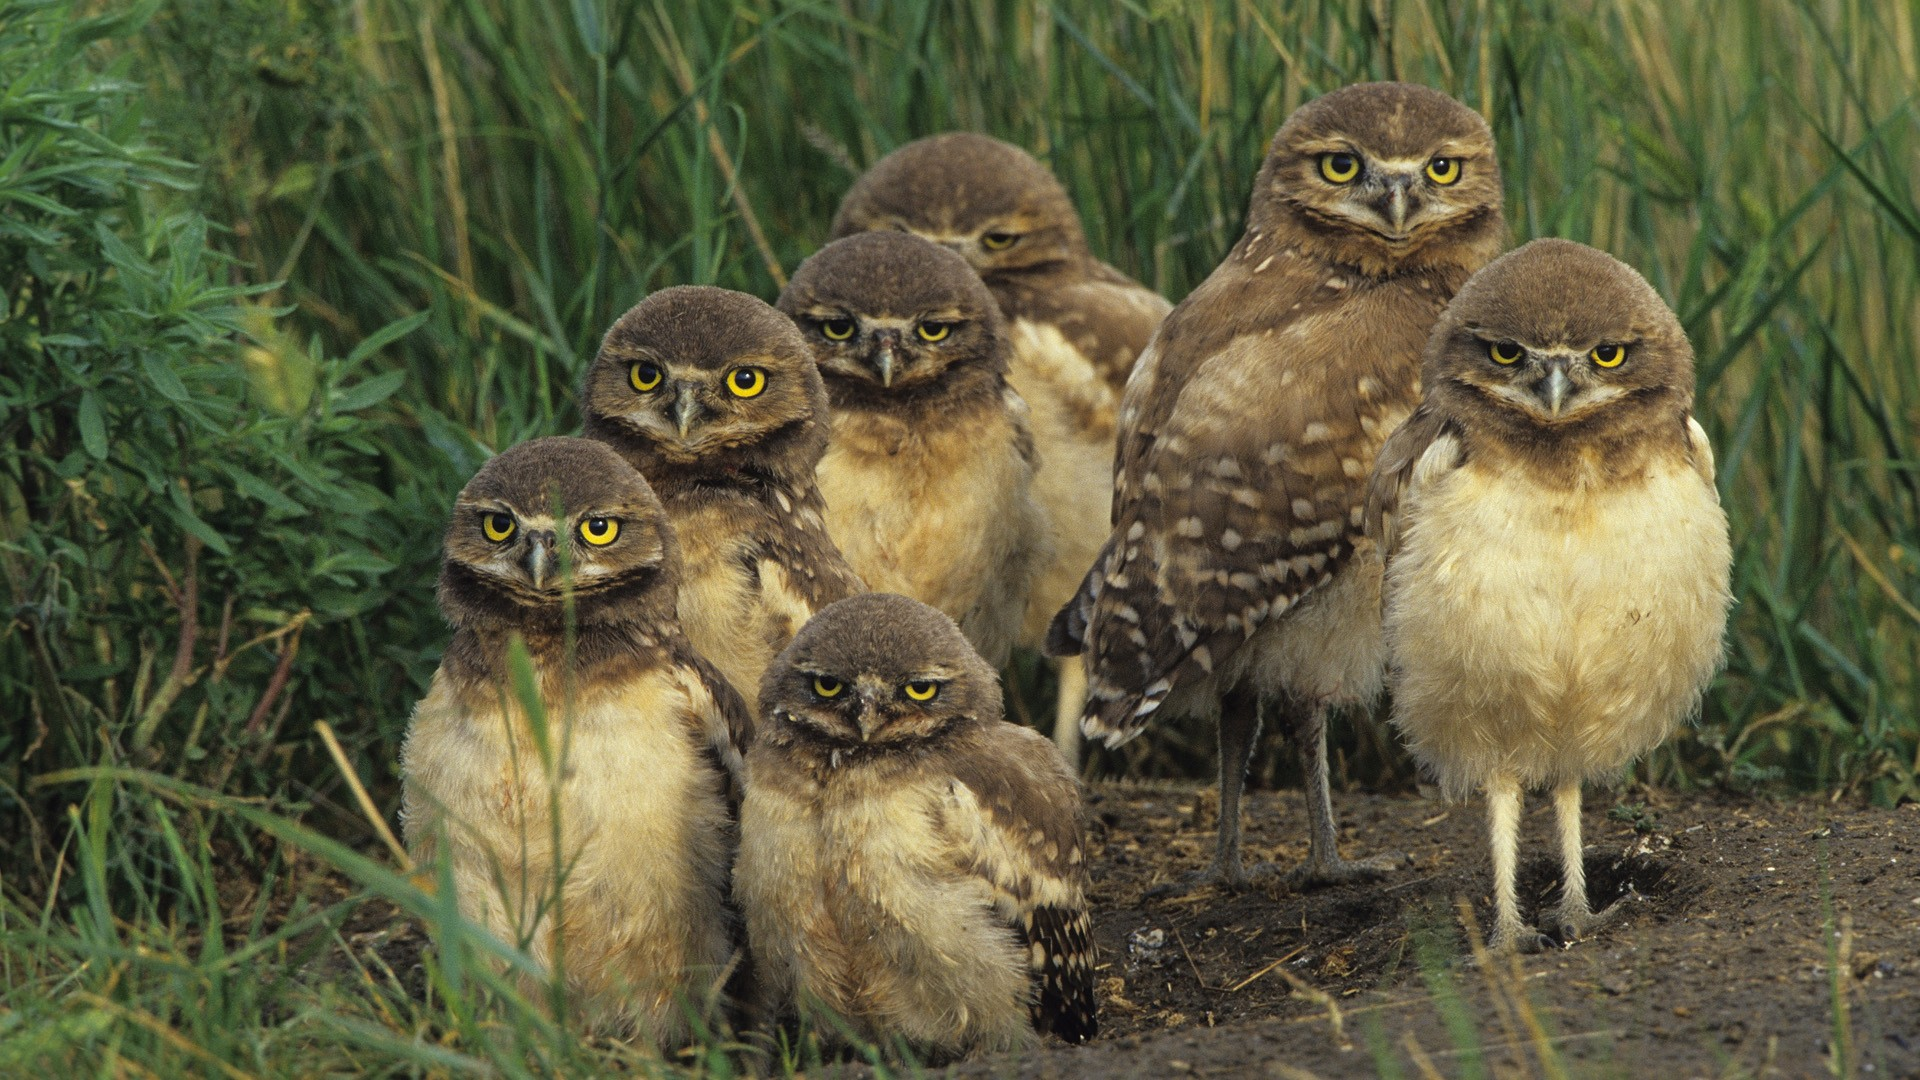 Birds wildlife Owls baby HD Wallpaper